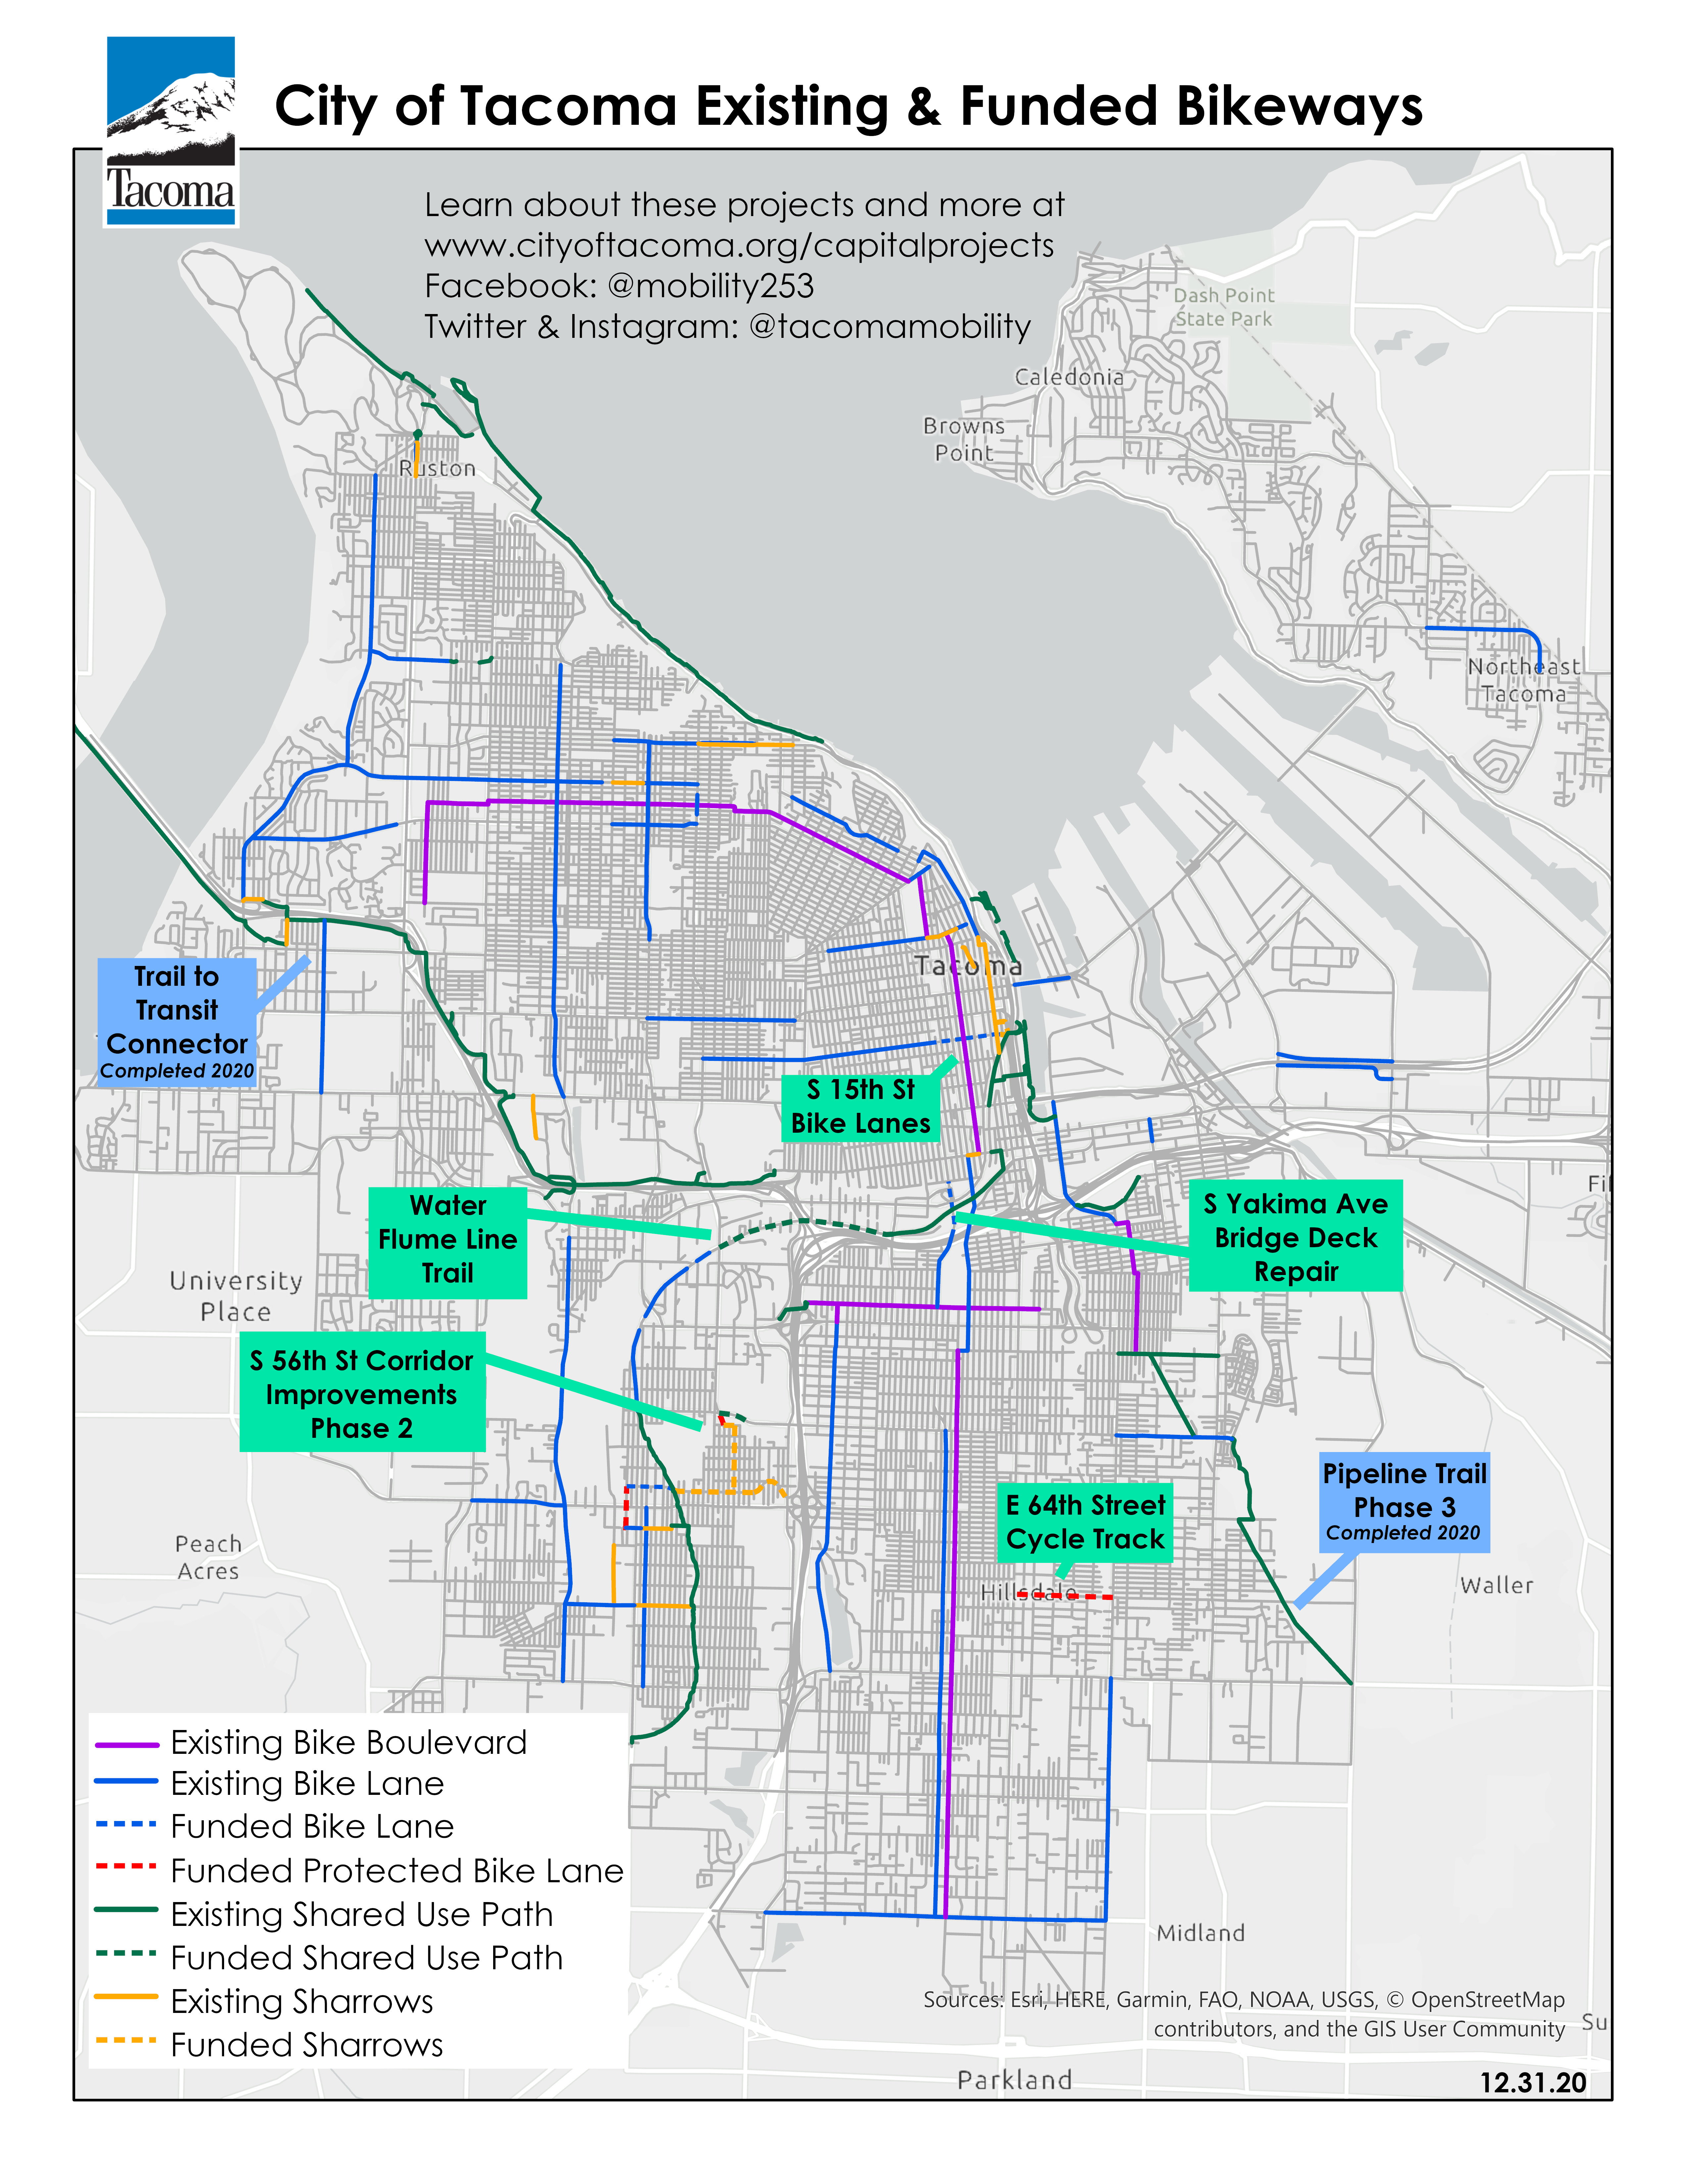 Map of existing and funded bicycle facilities